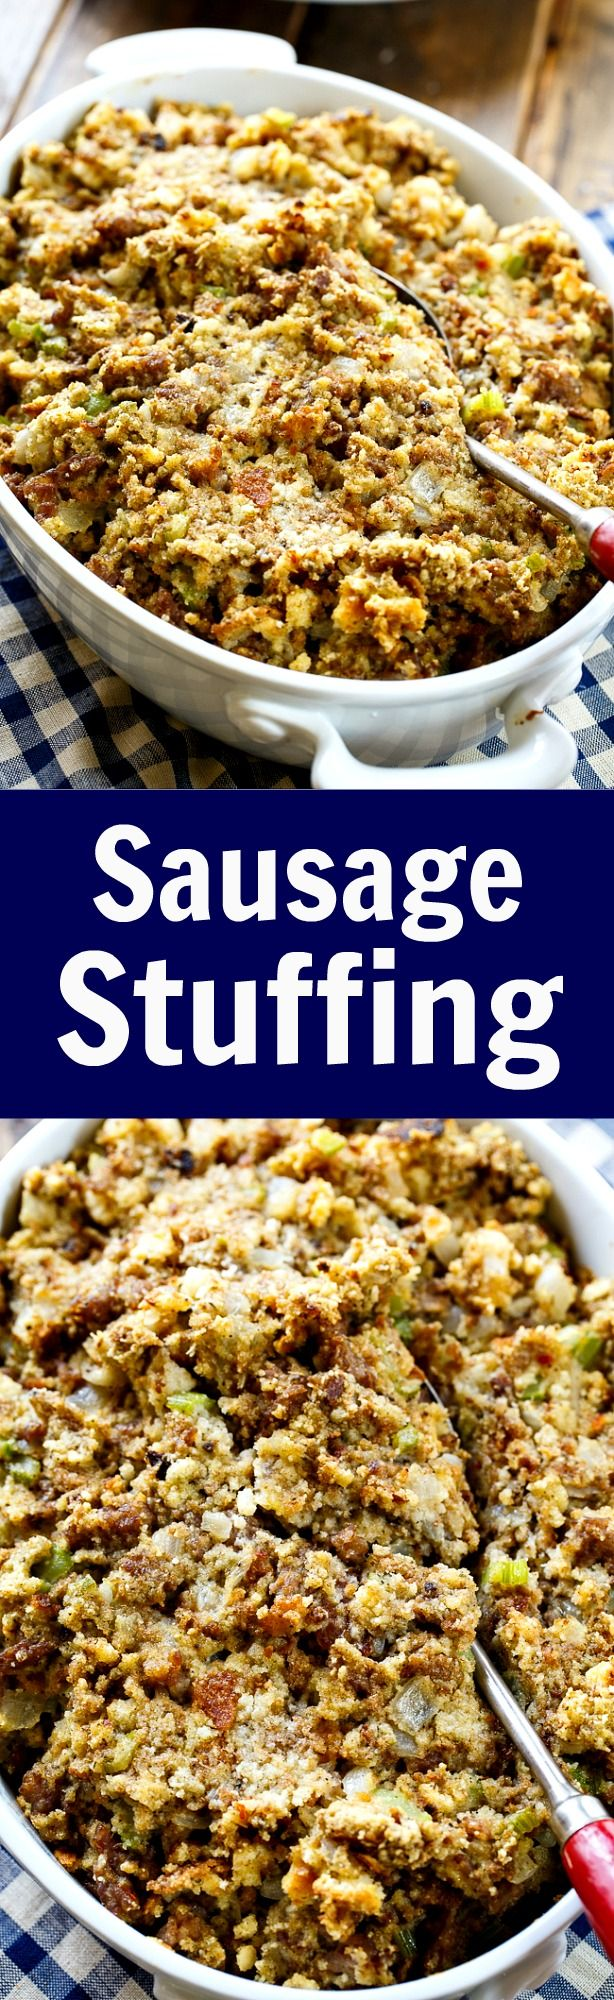 sausage stuffing things stuffing stuffing lots herb stuffing stuffing ...